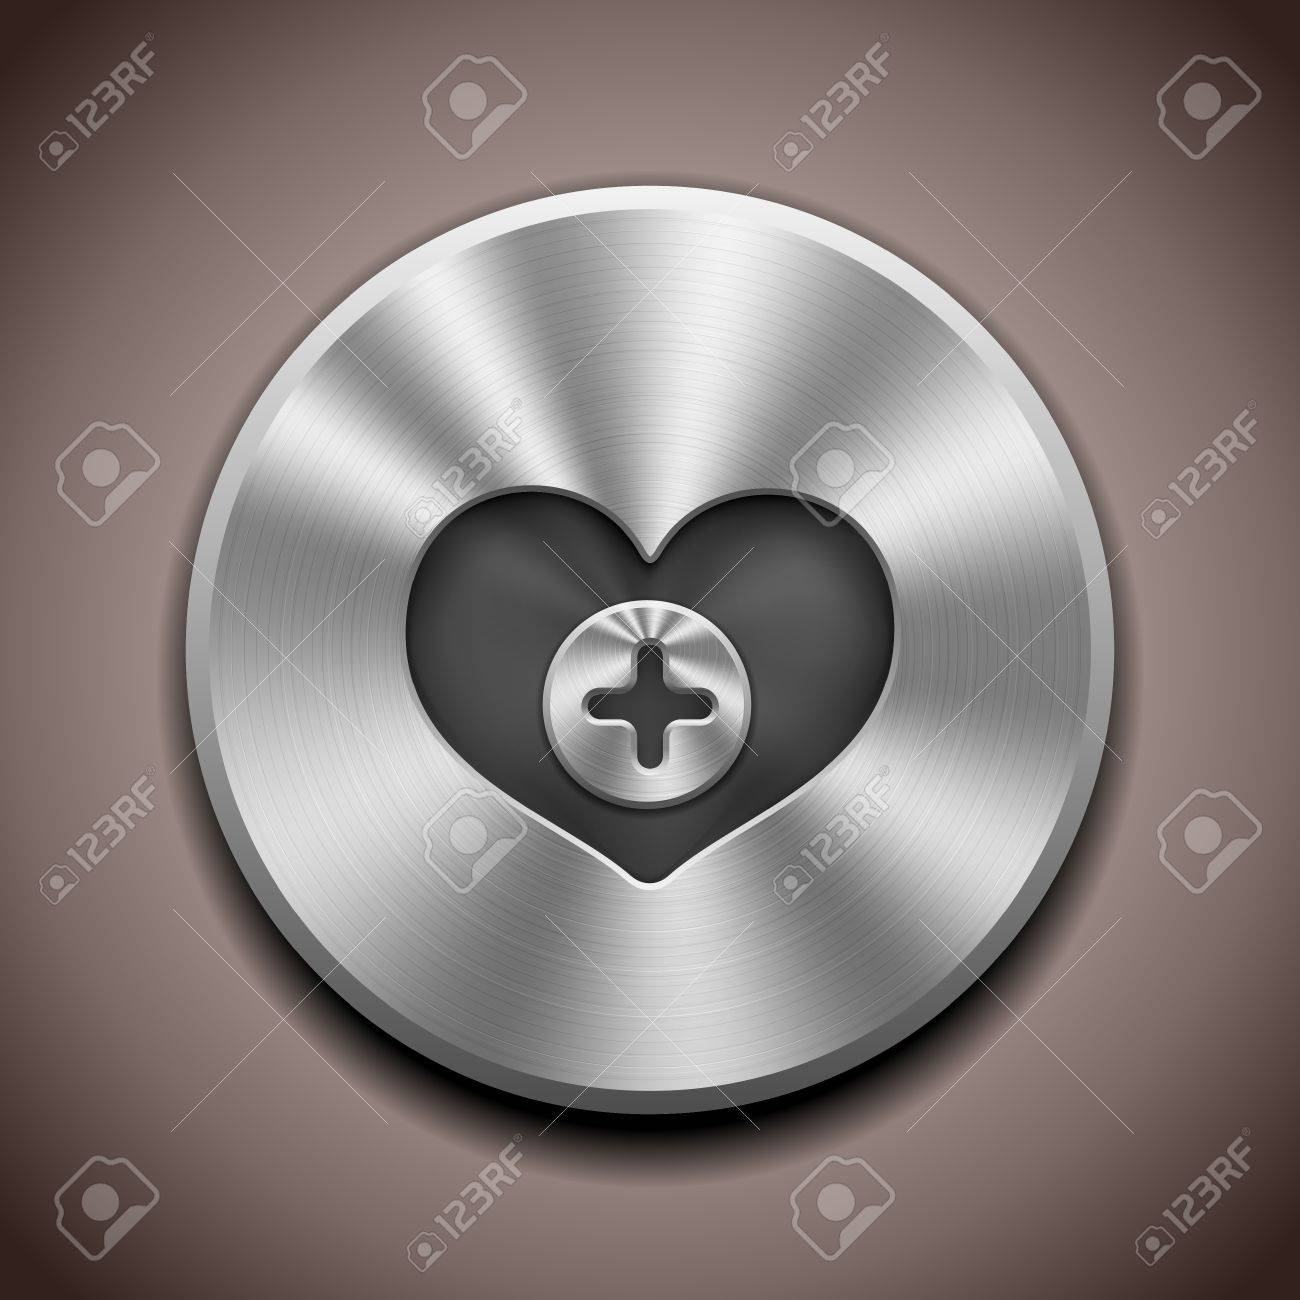 Realistic Metal Favorite button with circular processing Stock Vector - 12813251